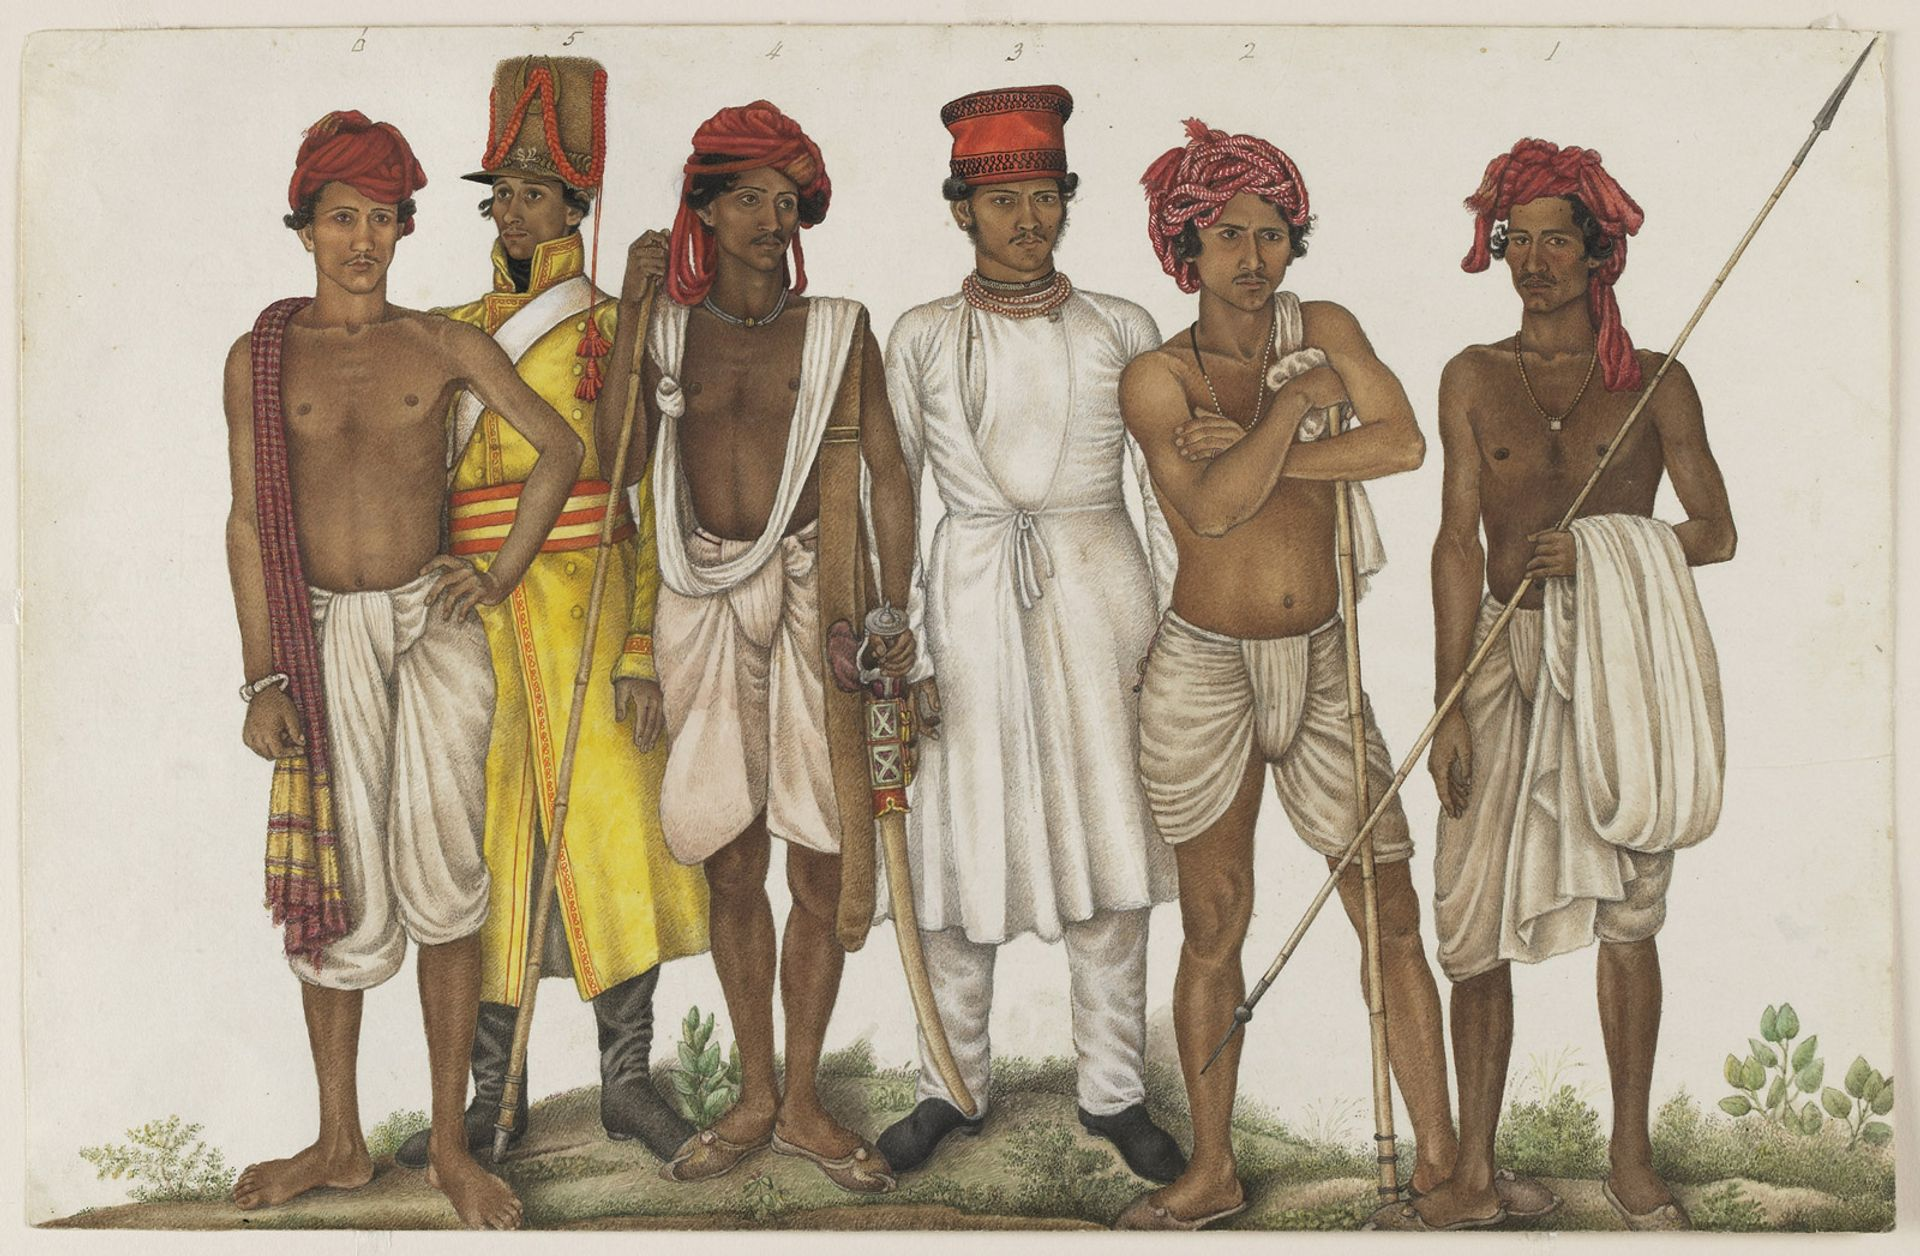 Ghulam Ali Khan's Six Recruits (1815-16) was commissioned by Colonel James Skinner, an East India Company officer © Freer Gallery of Art and Arthur M. Sackler Gallery